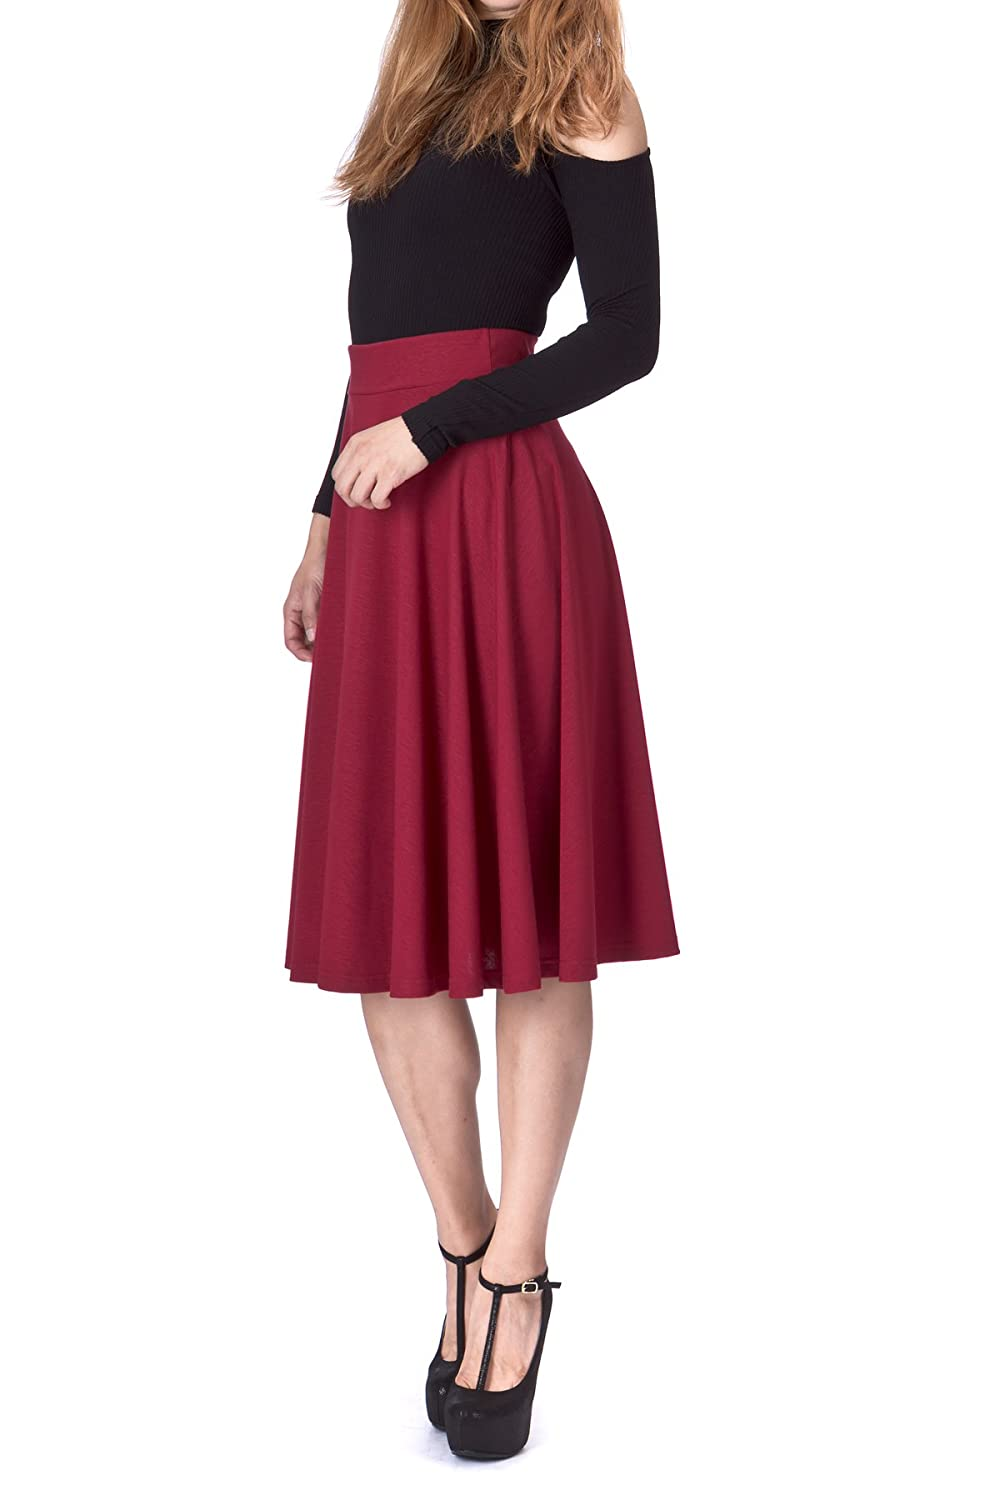 Dani's Choice Beautiful Flowing A-line Flared Swing Midi Skirt SN16-0802-001